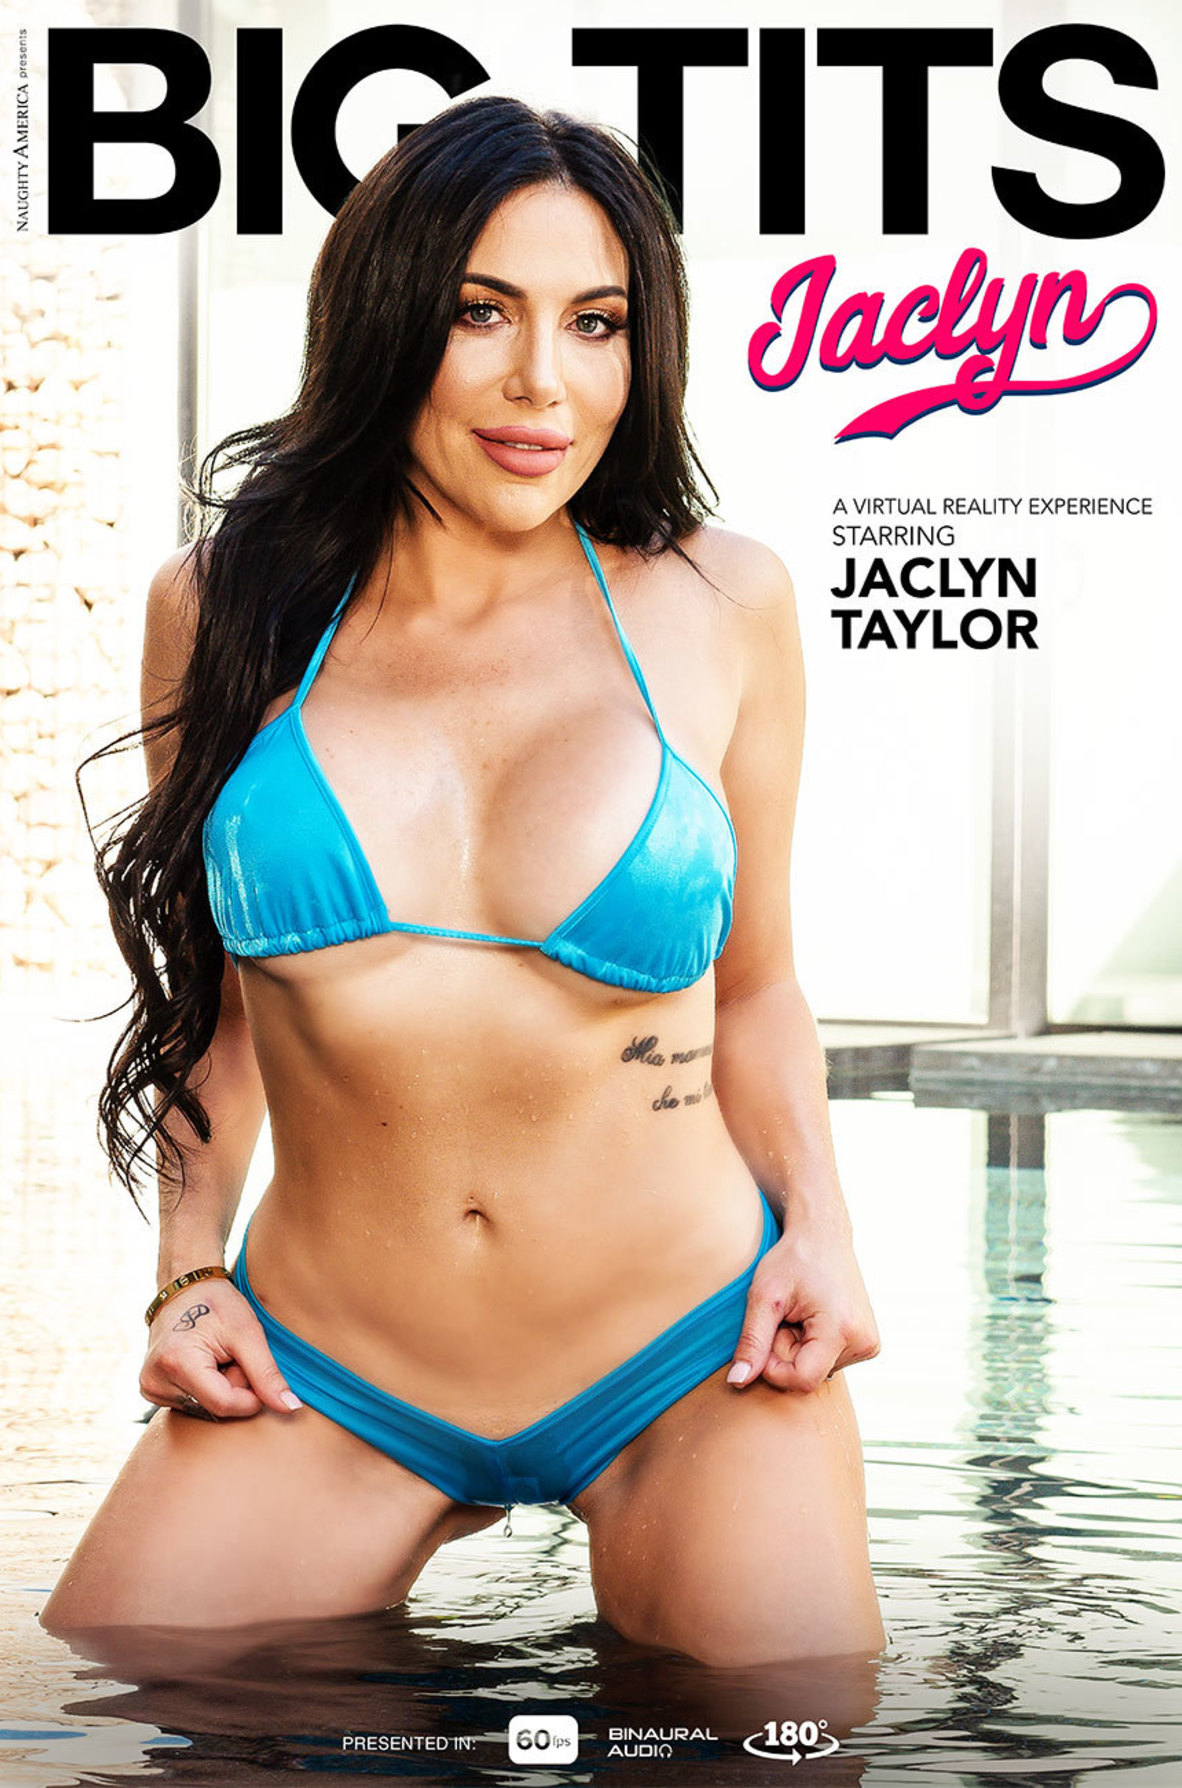 Watch Jaclyn Taylor and Ryan Driller VR video in Naughty America